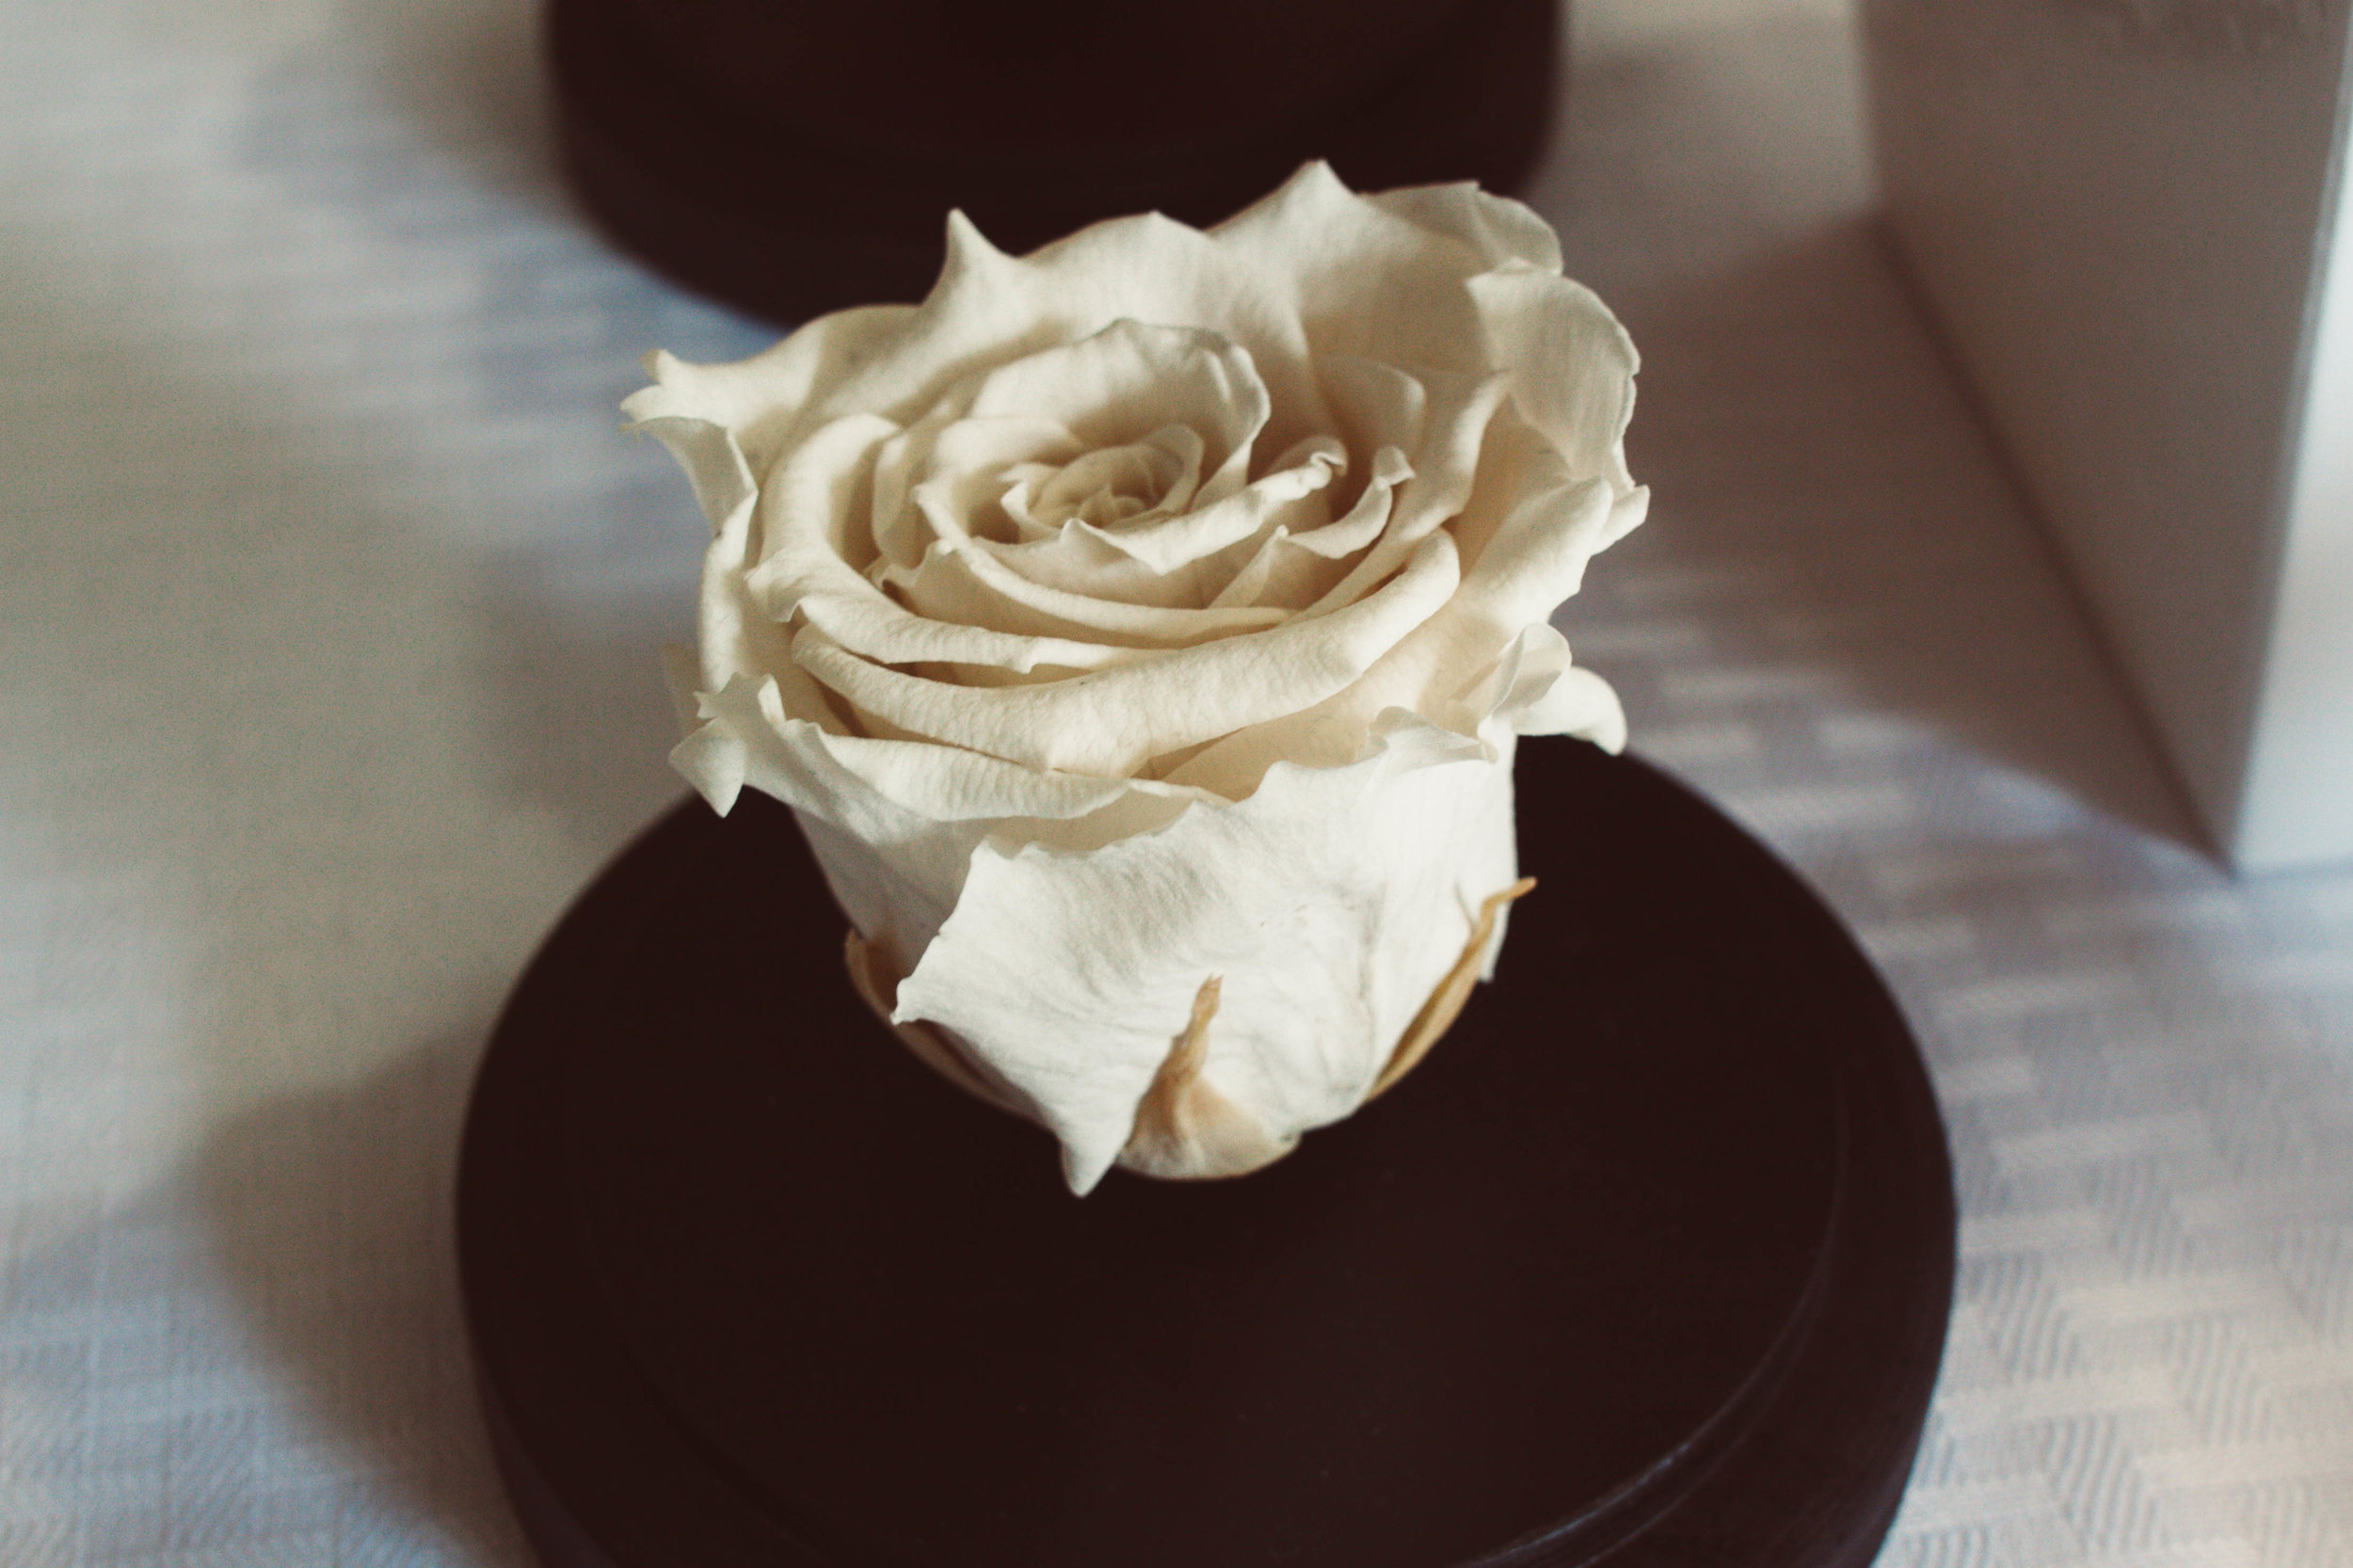 Glass dome – white rose/glowing blue